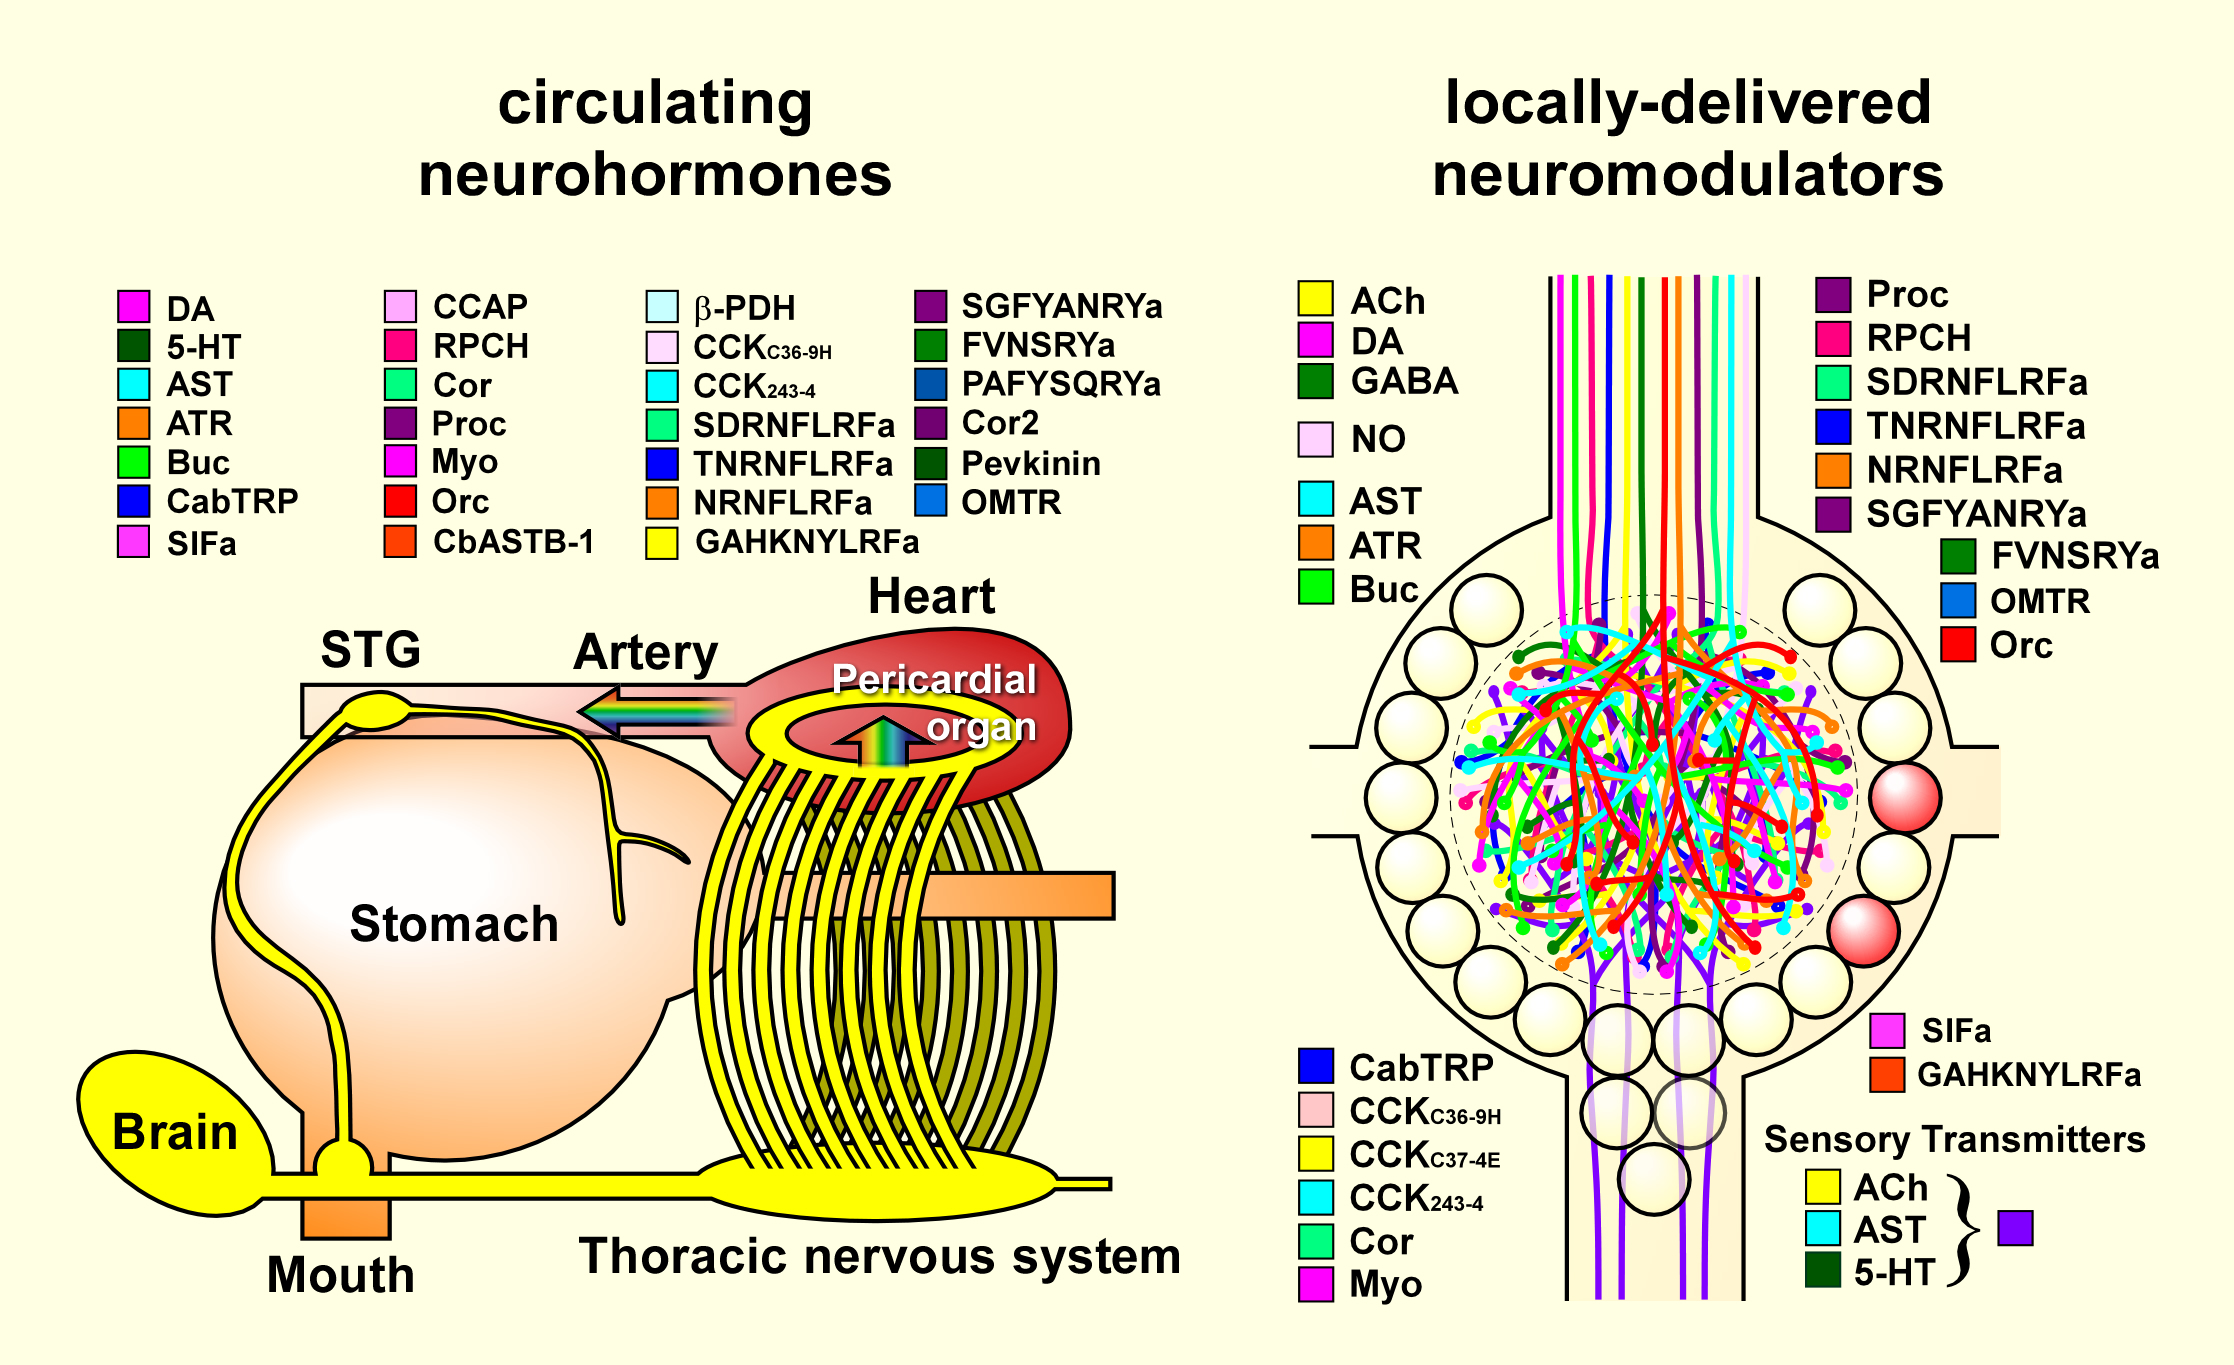 Figure Central Wiring Diagram Further Home Circuit On Generator Modulators In Cancer